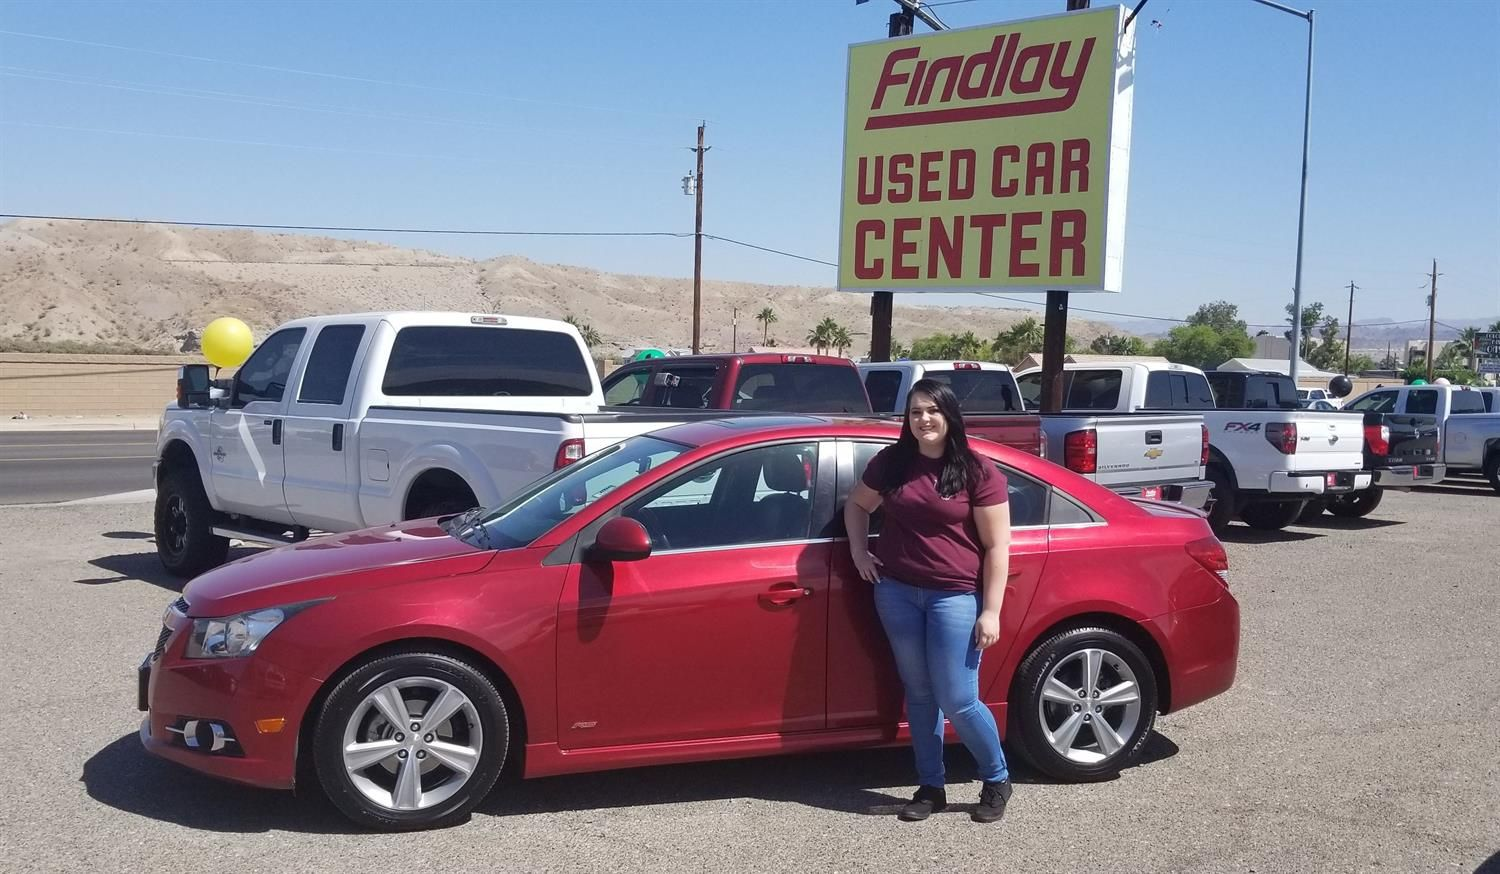 Paislee S New 2012 Chevrolet Cruze Congratulations And Best